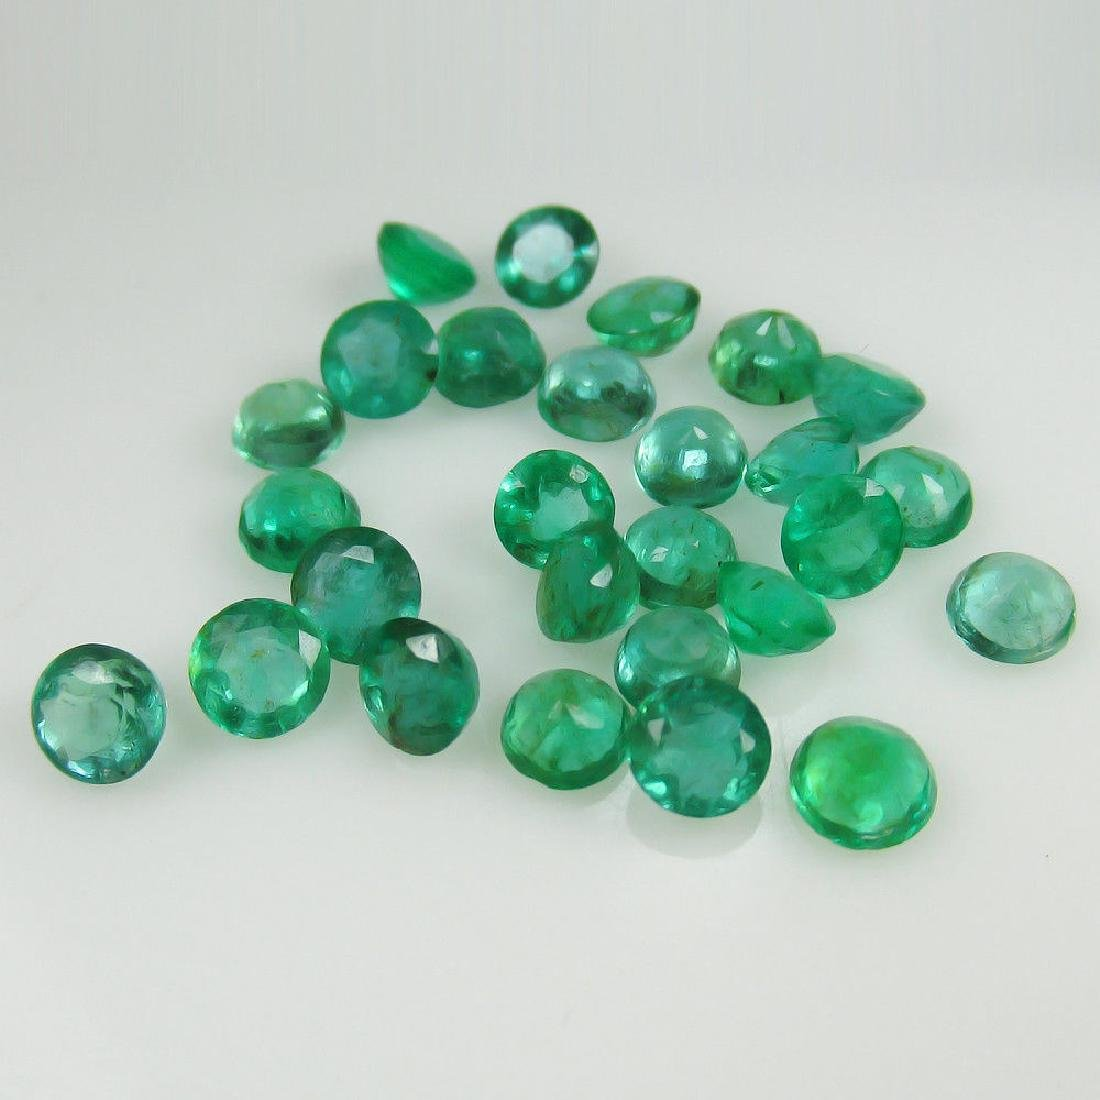 8.65 Ct Genuine 27 Loose Zambian Emerald Excellent